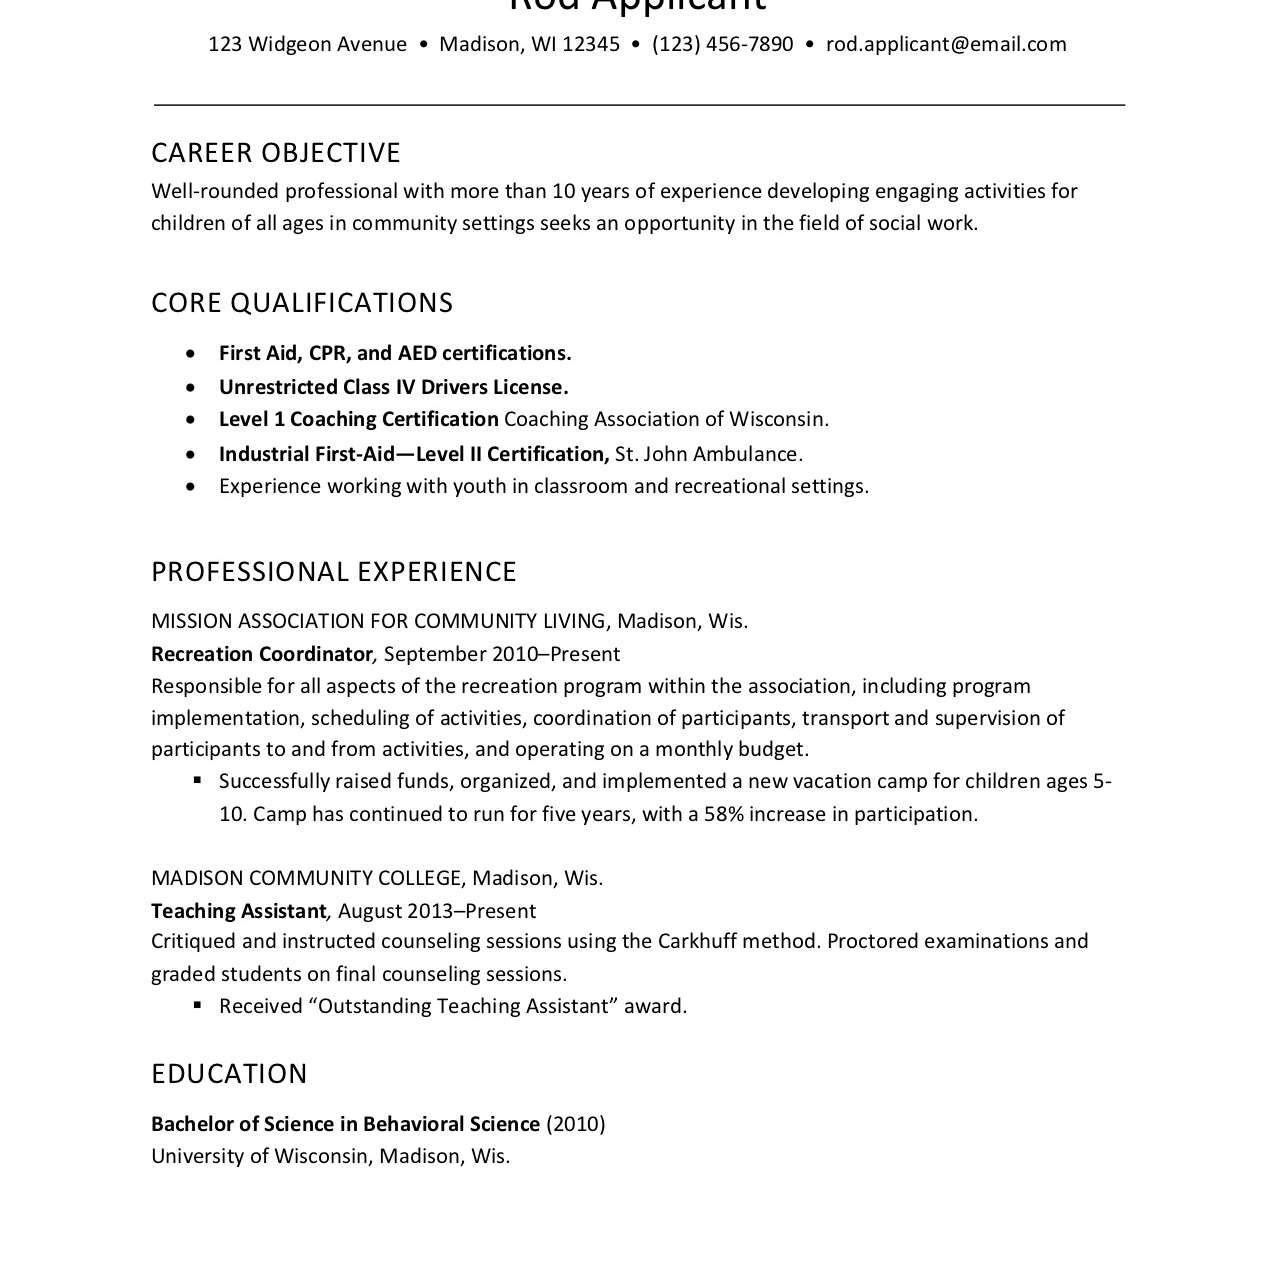 resume example for childcare social services worker child care assistant examples Resume Child Care Assistant Resume Examples